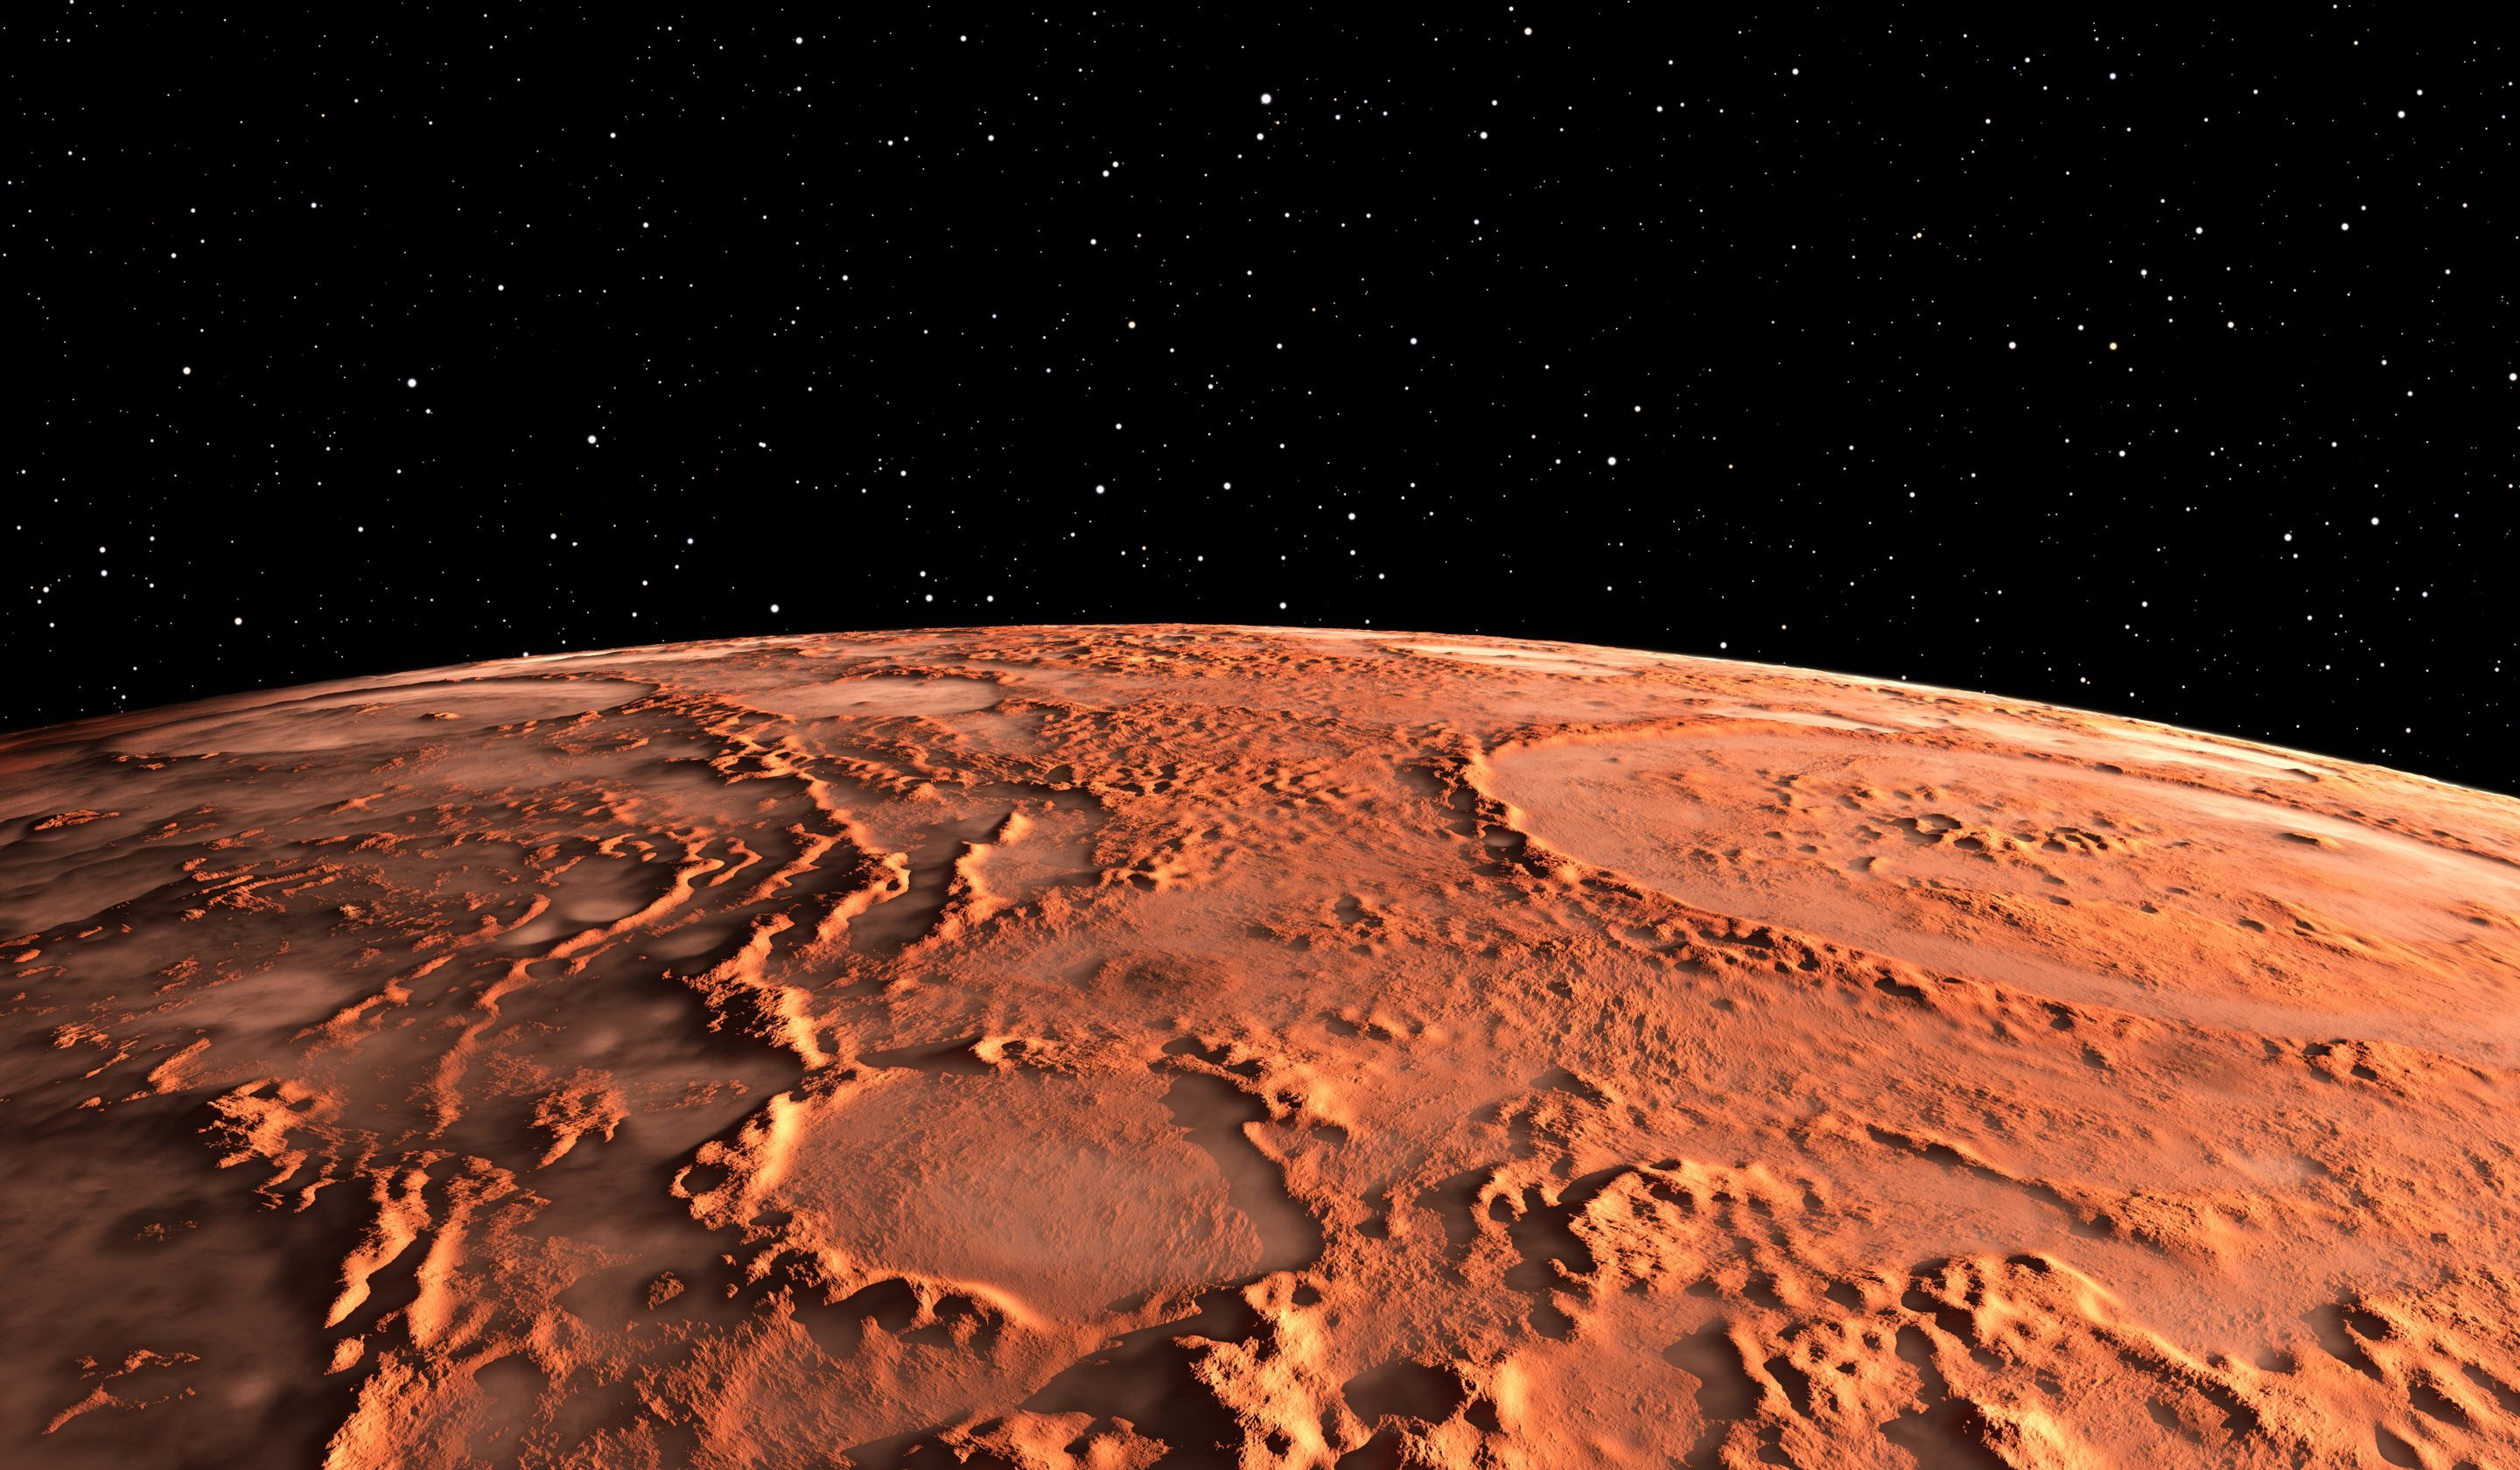 How Can We Survive On Mars Mars Planet Mars Surface The Martian